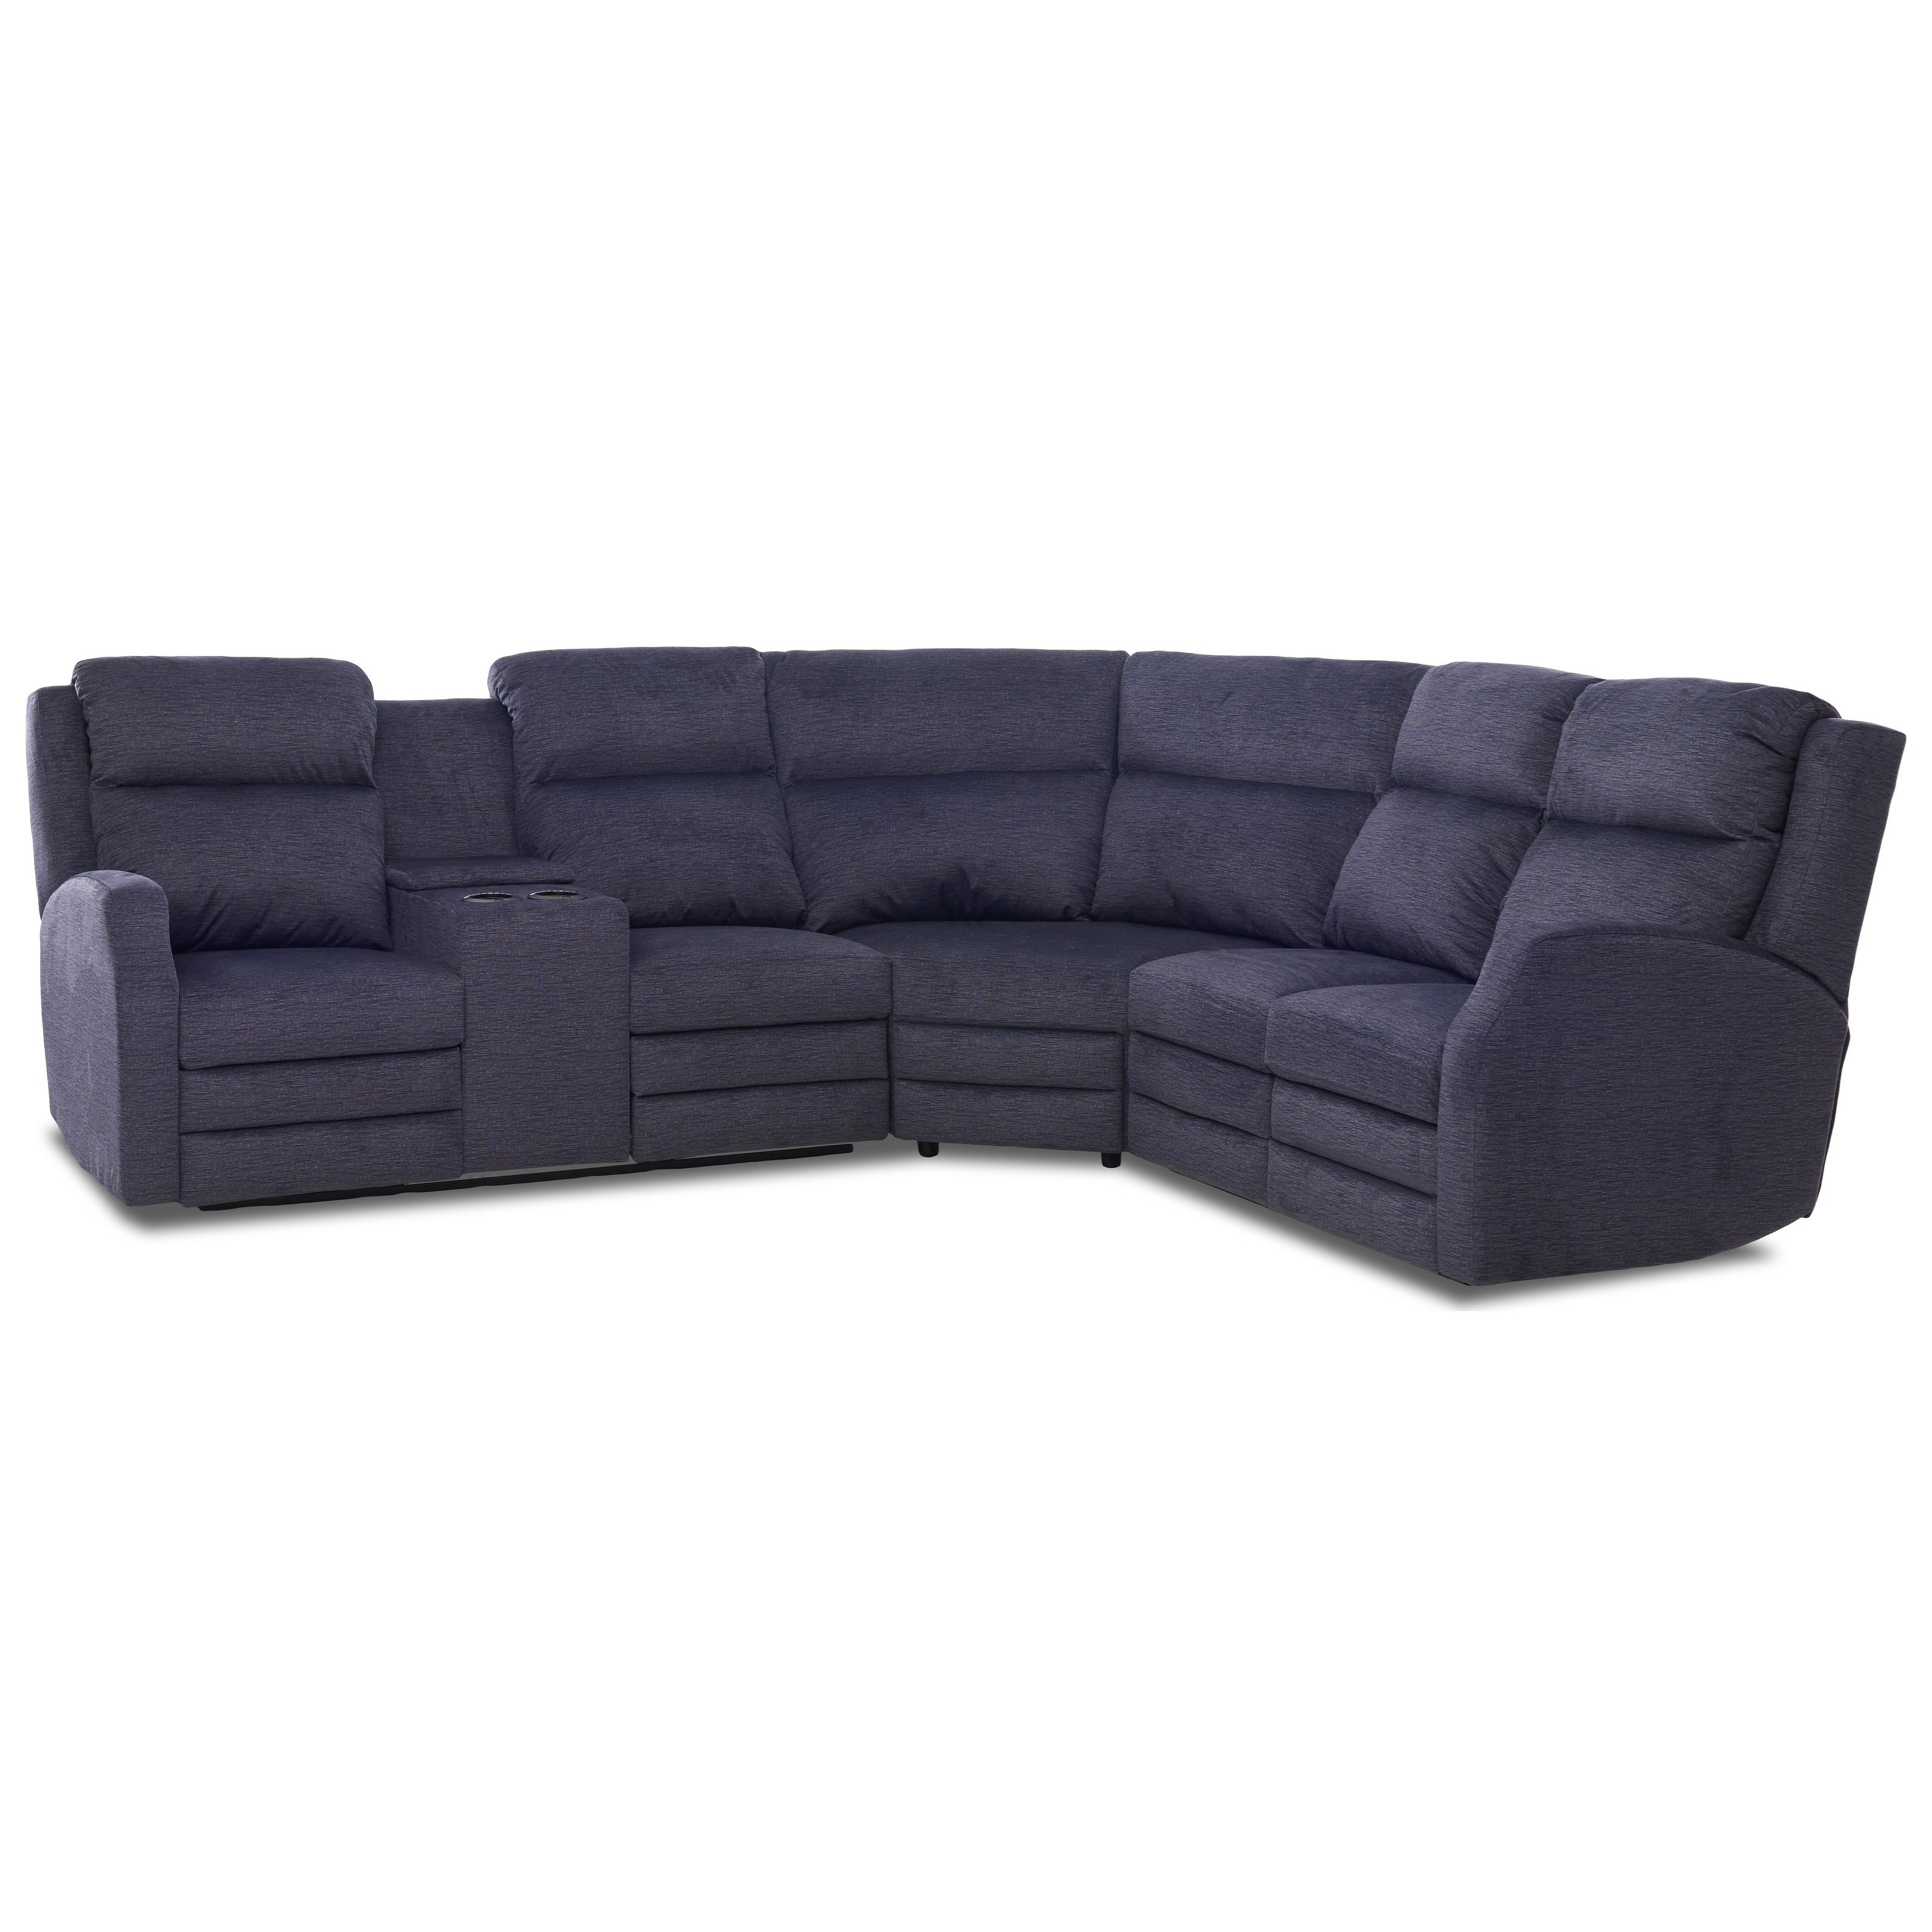 Kamiah 4 Seat Pwr Recl Sect Sofa w/ Pwr Head/Lumb by Klaussner at Catalog Outlet